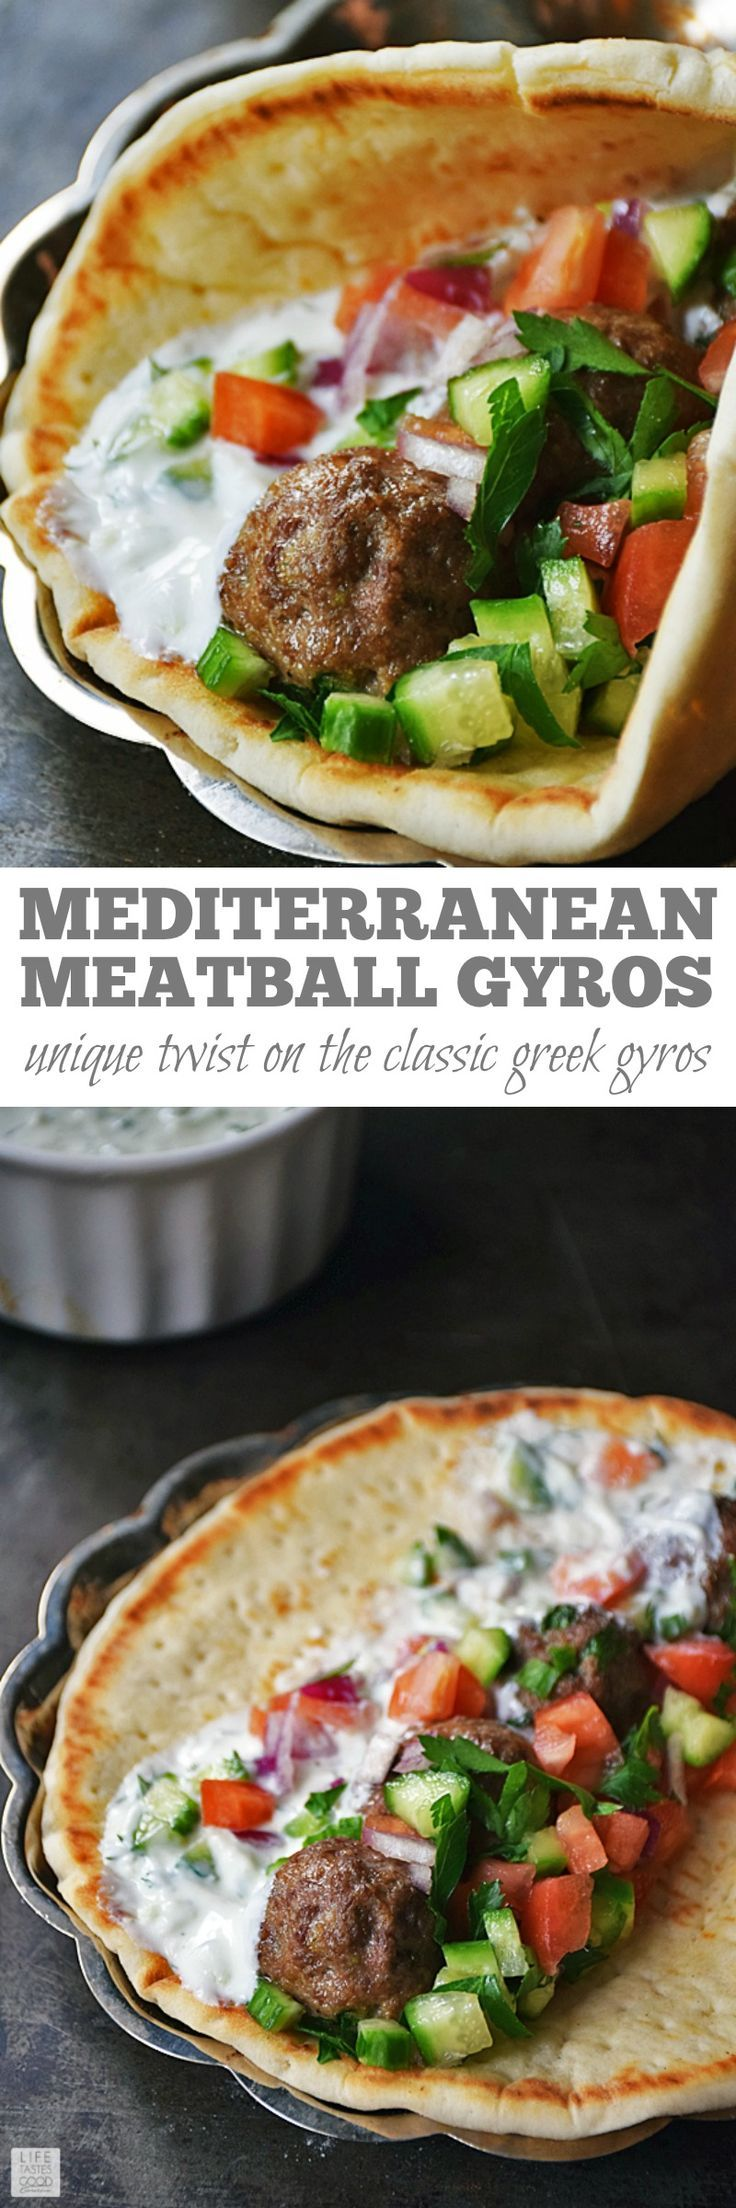 72 best greek to me images on pinterest recipes snacks and cooker mediterranean meatball gyros sandwich sundaysupper forumfinder Choice Image